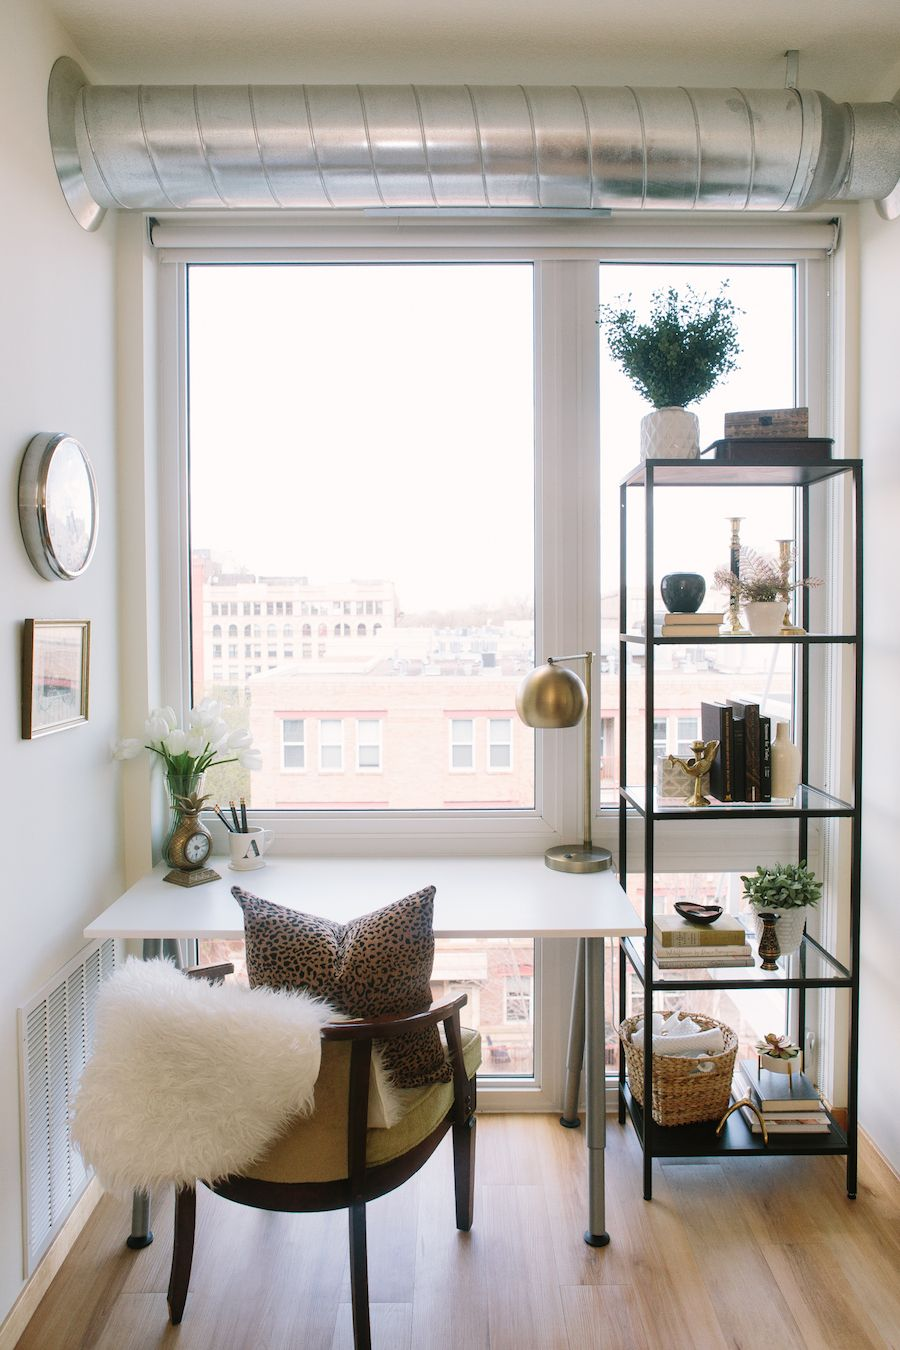 Tiny home office Window Brb This Dreamy Apartment Has Us Packing Our Bags For Minneapolis Small Apartments Small Pinterest Brb This Dreamy Apartment Has Us Packing Our Bags For Minneapolis